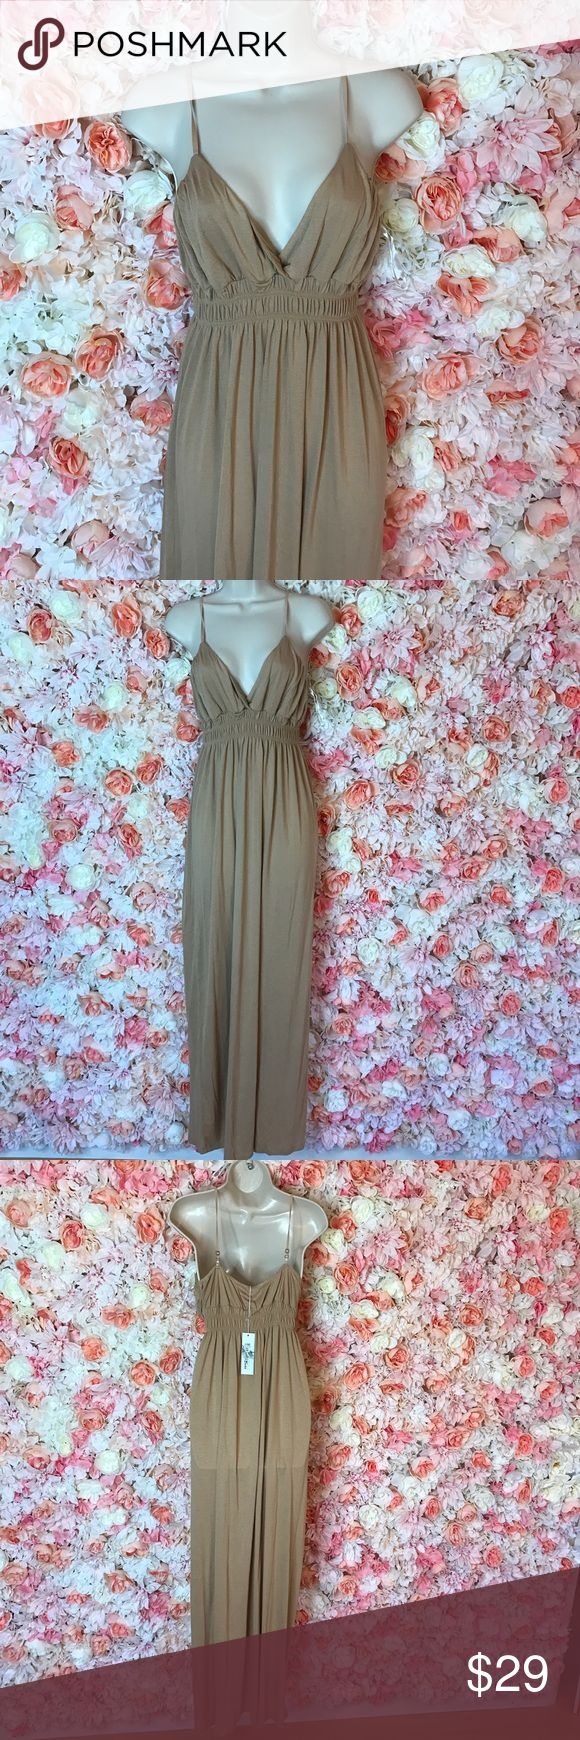 Beige maxi dress Long maxi dress says size large but fits me perfectly. #maxidress my hand shows it's not see though I was just using a very bright light so it looks a little sheer Dresses Maxi